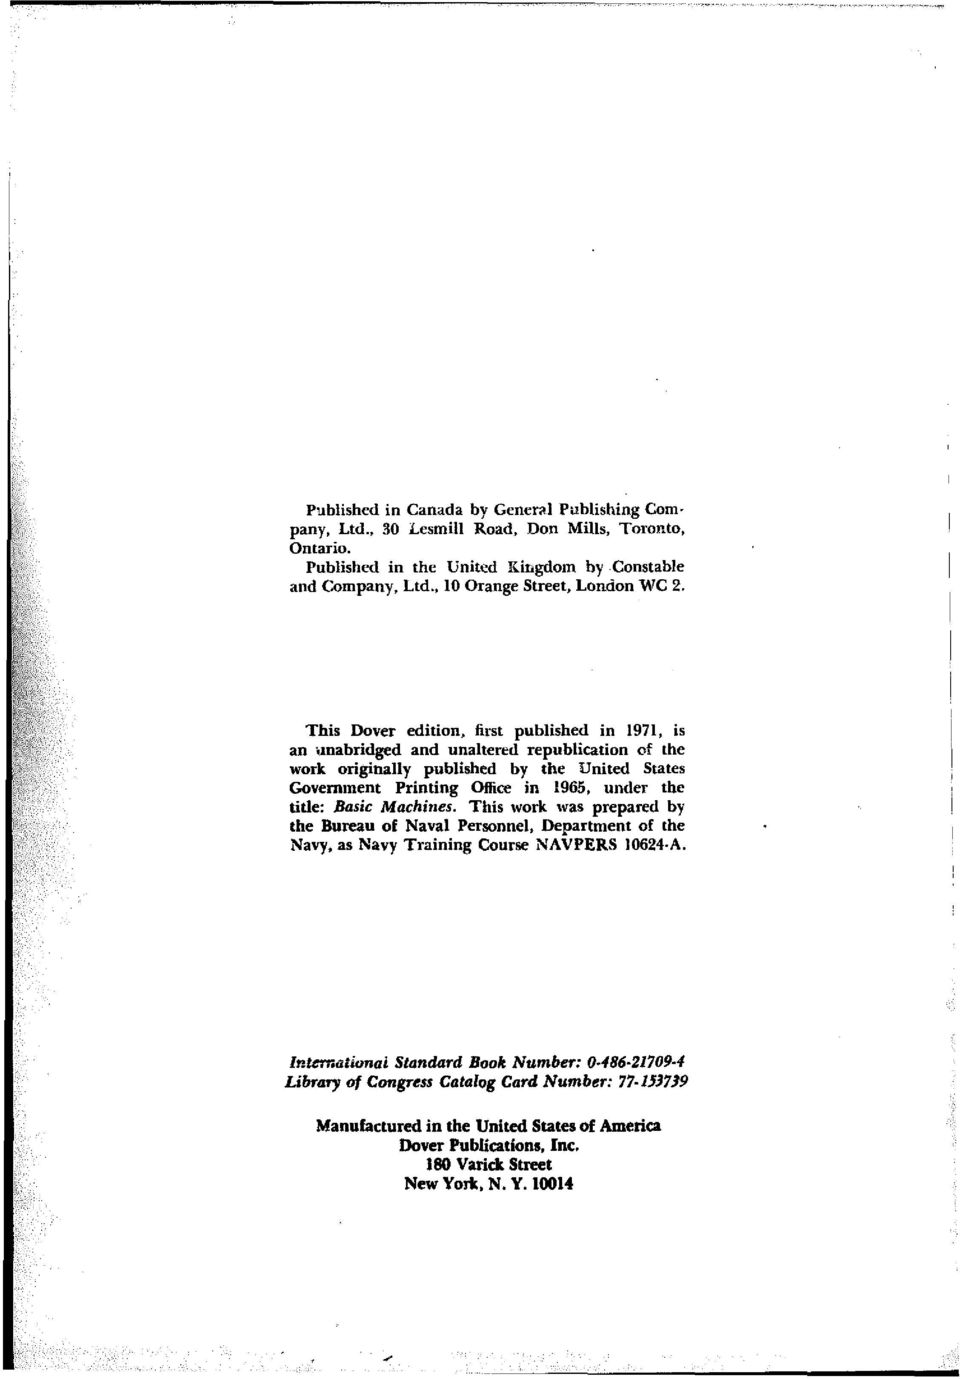 This Dover edition, lint published in 1971, is an ilnabridged and unaltered republication of the work originally published by the United States Government Printing Office in 1965,